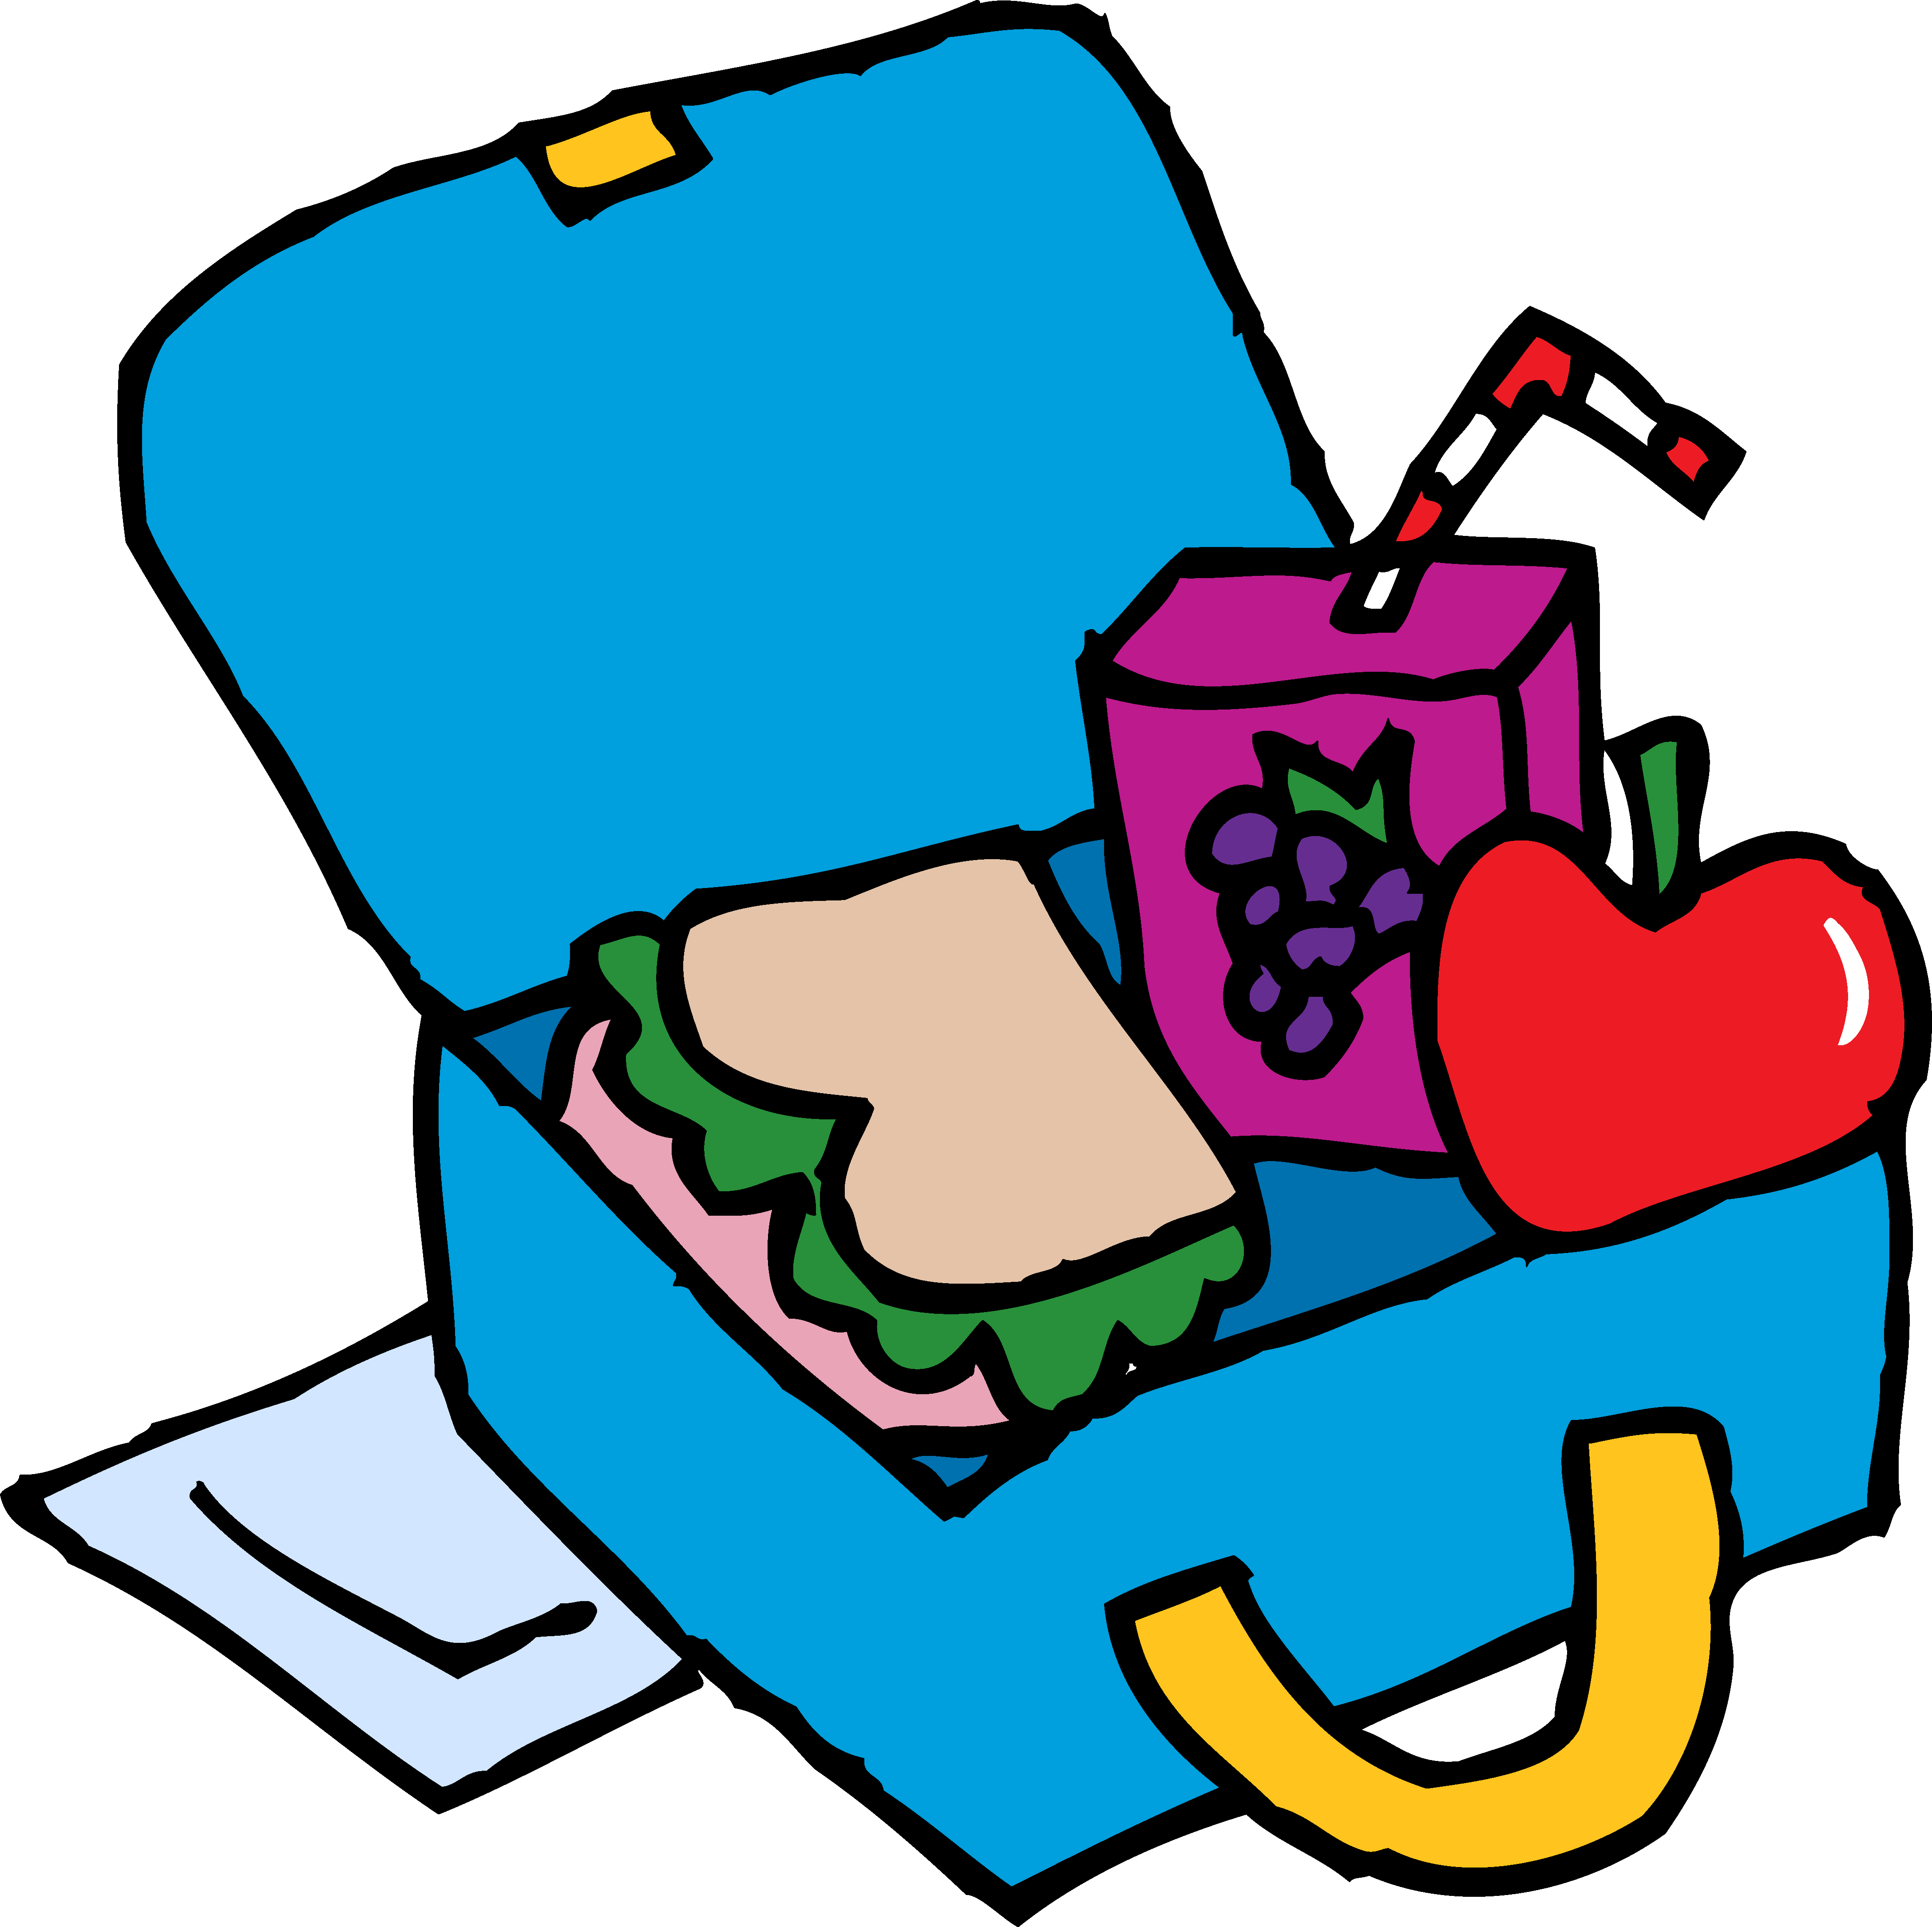 Lunchbox clipart red. Blue lunch box clip